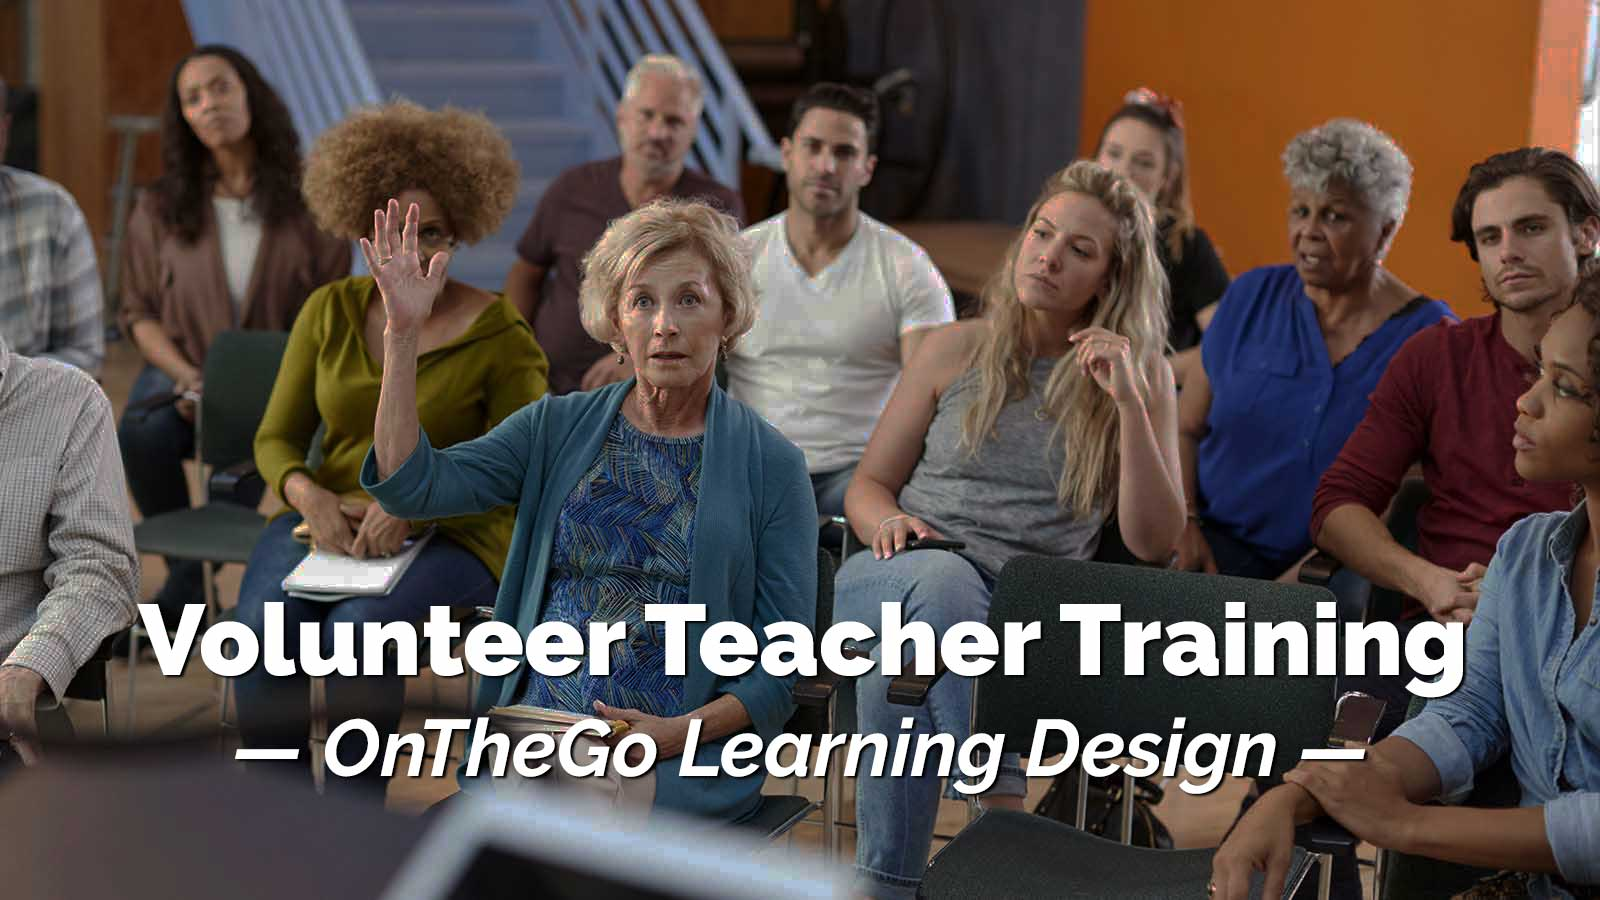 Woman raising hand in class. Volunteer Teacher Training. On the go Learning Design.